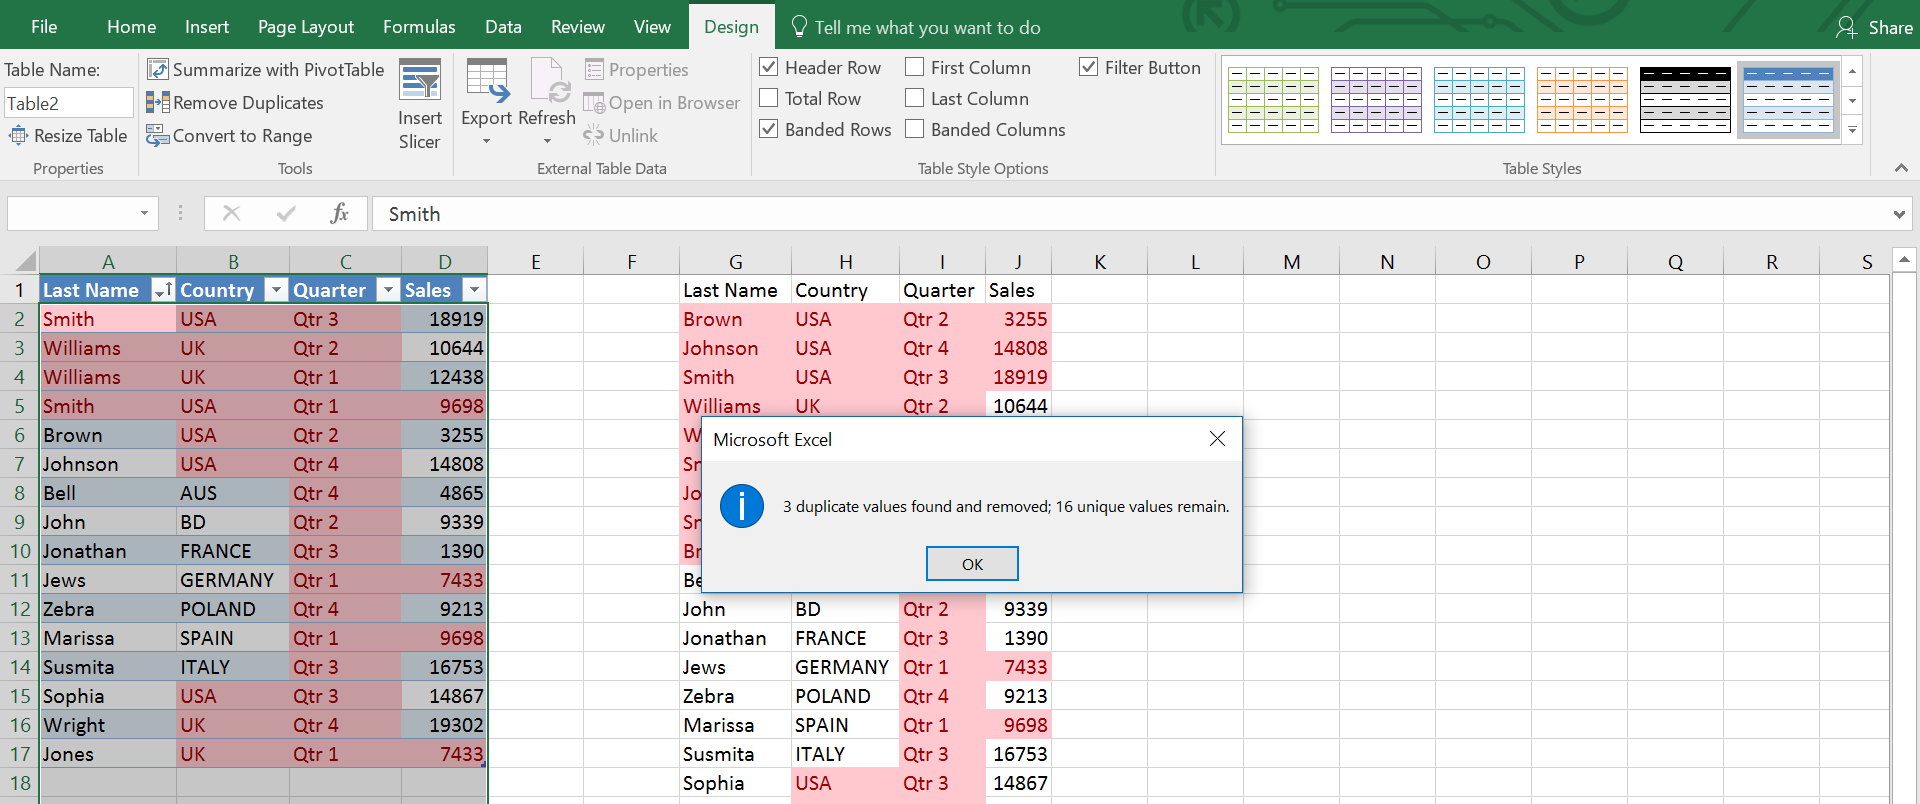 Microsoft Excel is showing how many duplicates have been removed with a message